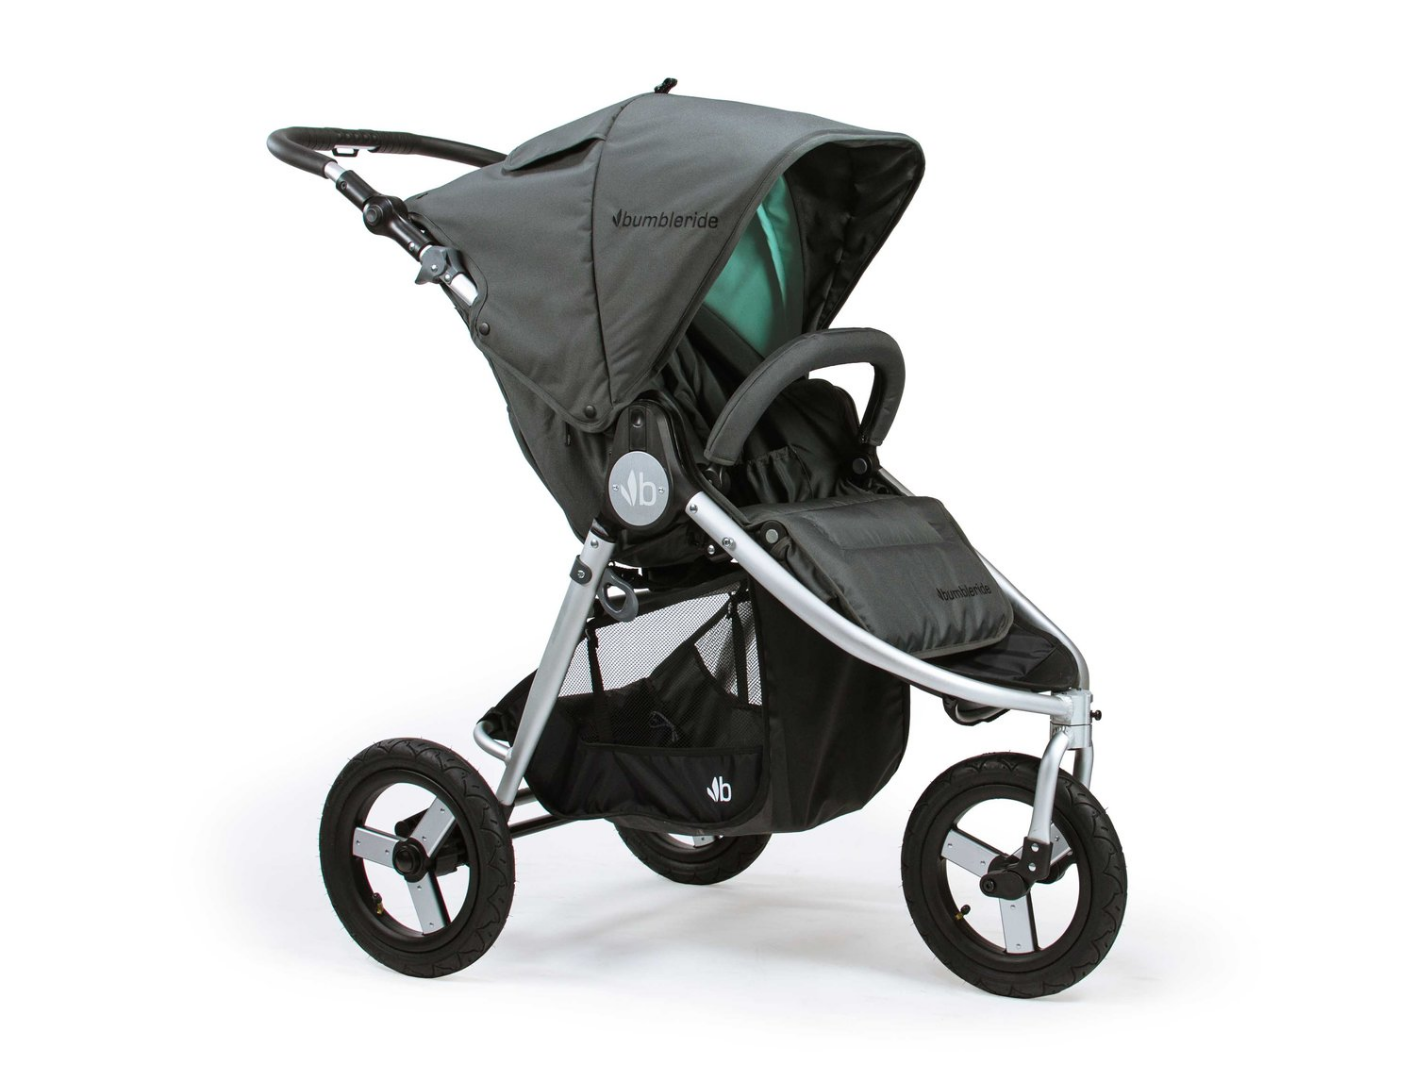 Bumbleride Indie: The stroller of choice for adventurous parents